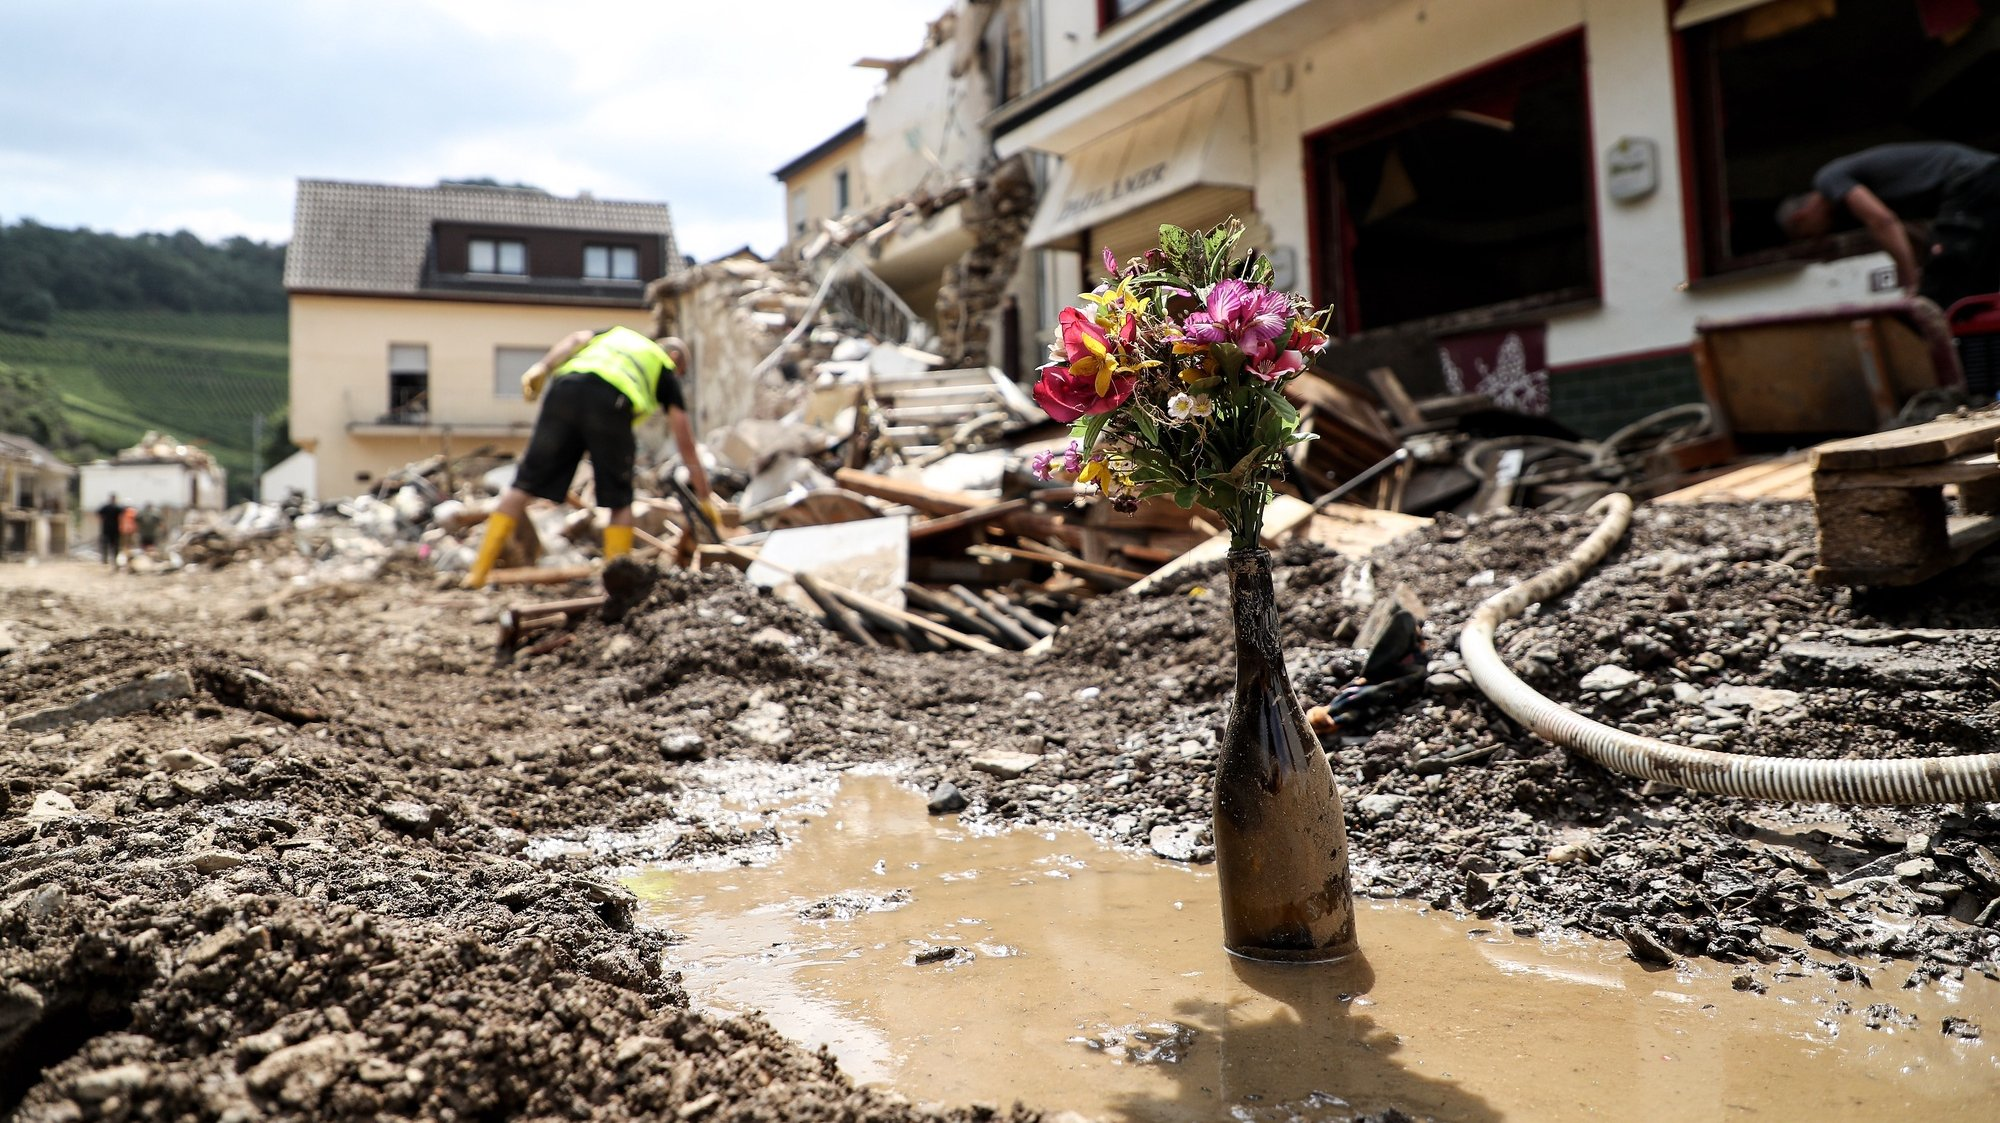 epaselect epa09358245 Flowers in a wine bottle standing in front of a destroyed house after the flooding of the Ahr River, in Mayschoss in the district of Ahrweiler, Germany, 22 July 2021. Large parts of Western Germany were hit by heavy, continuous rain in the night to 15 July resulting in local flash floods that destroyed buildings and swept away cars.  EPA/FRIEDEMANN VOGEL